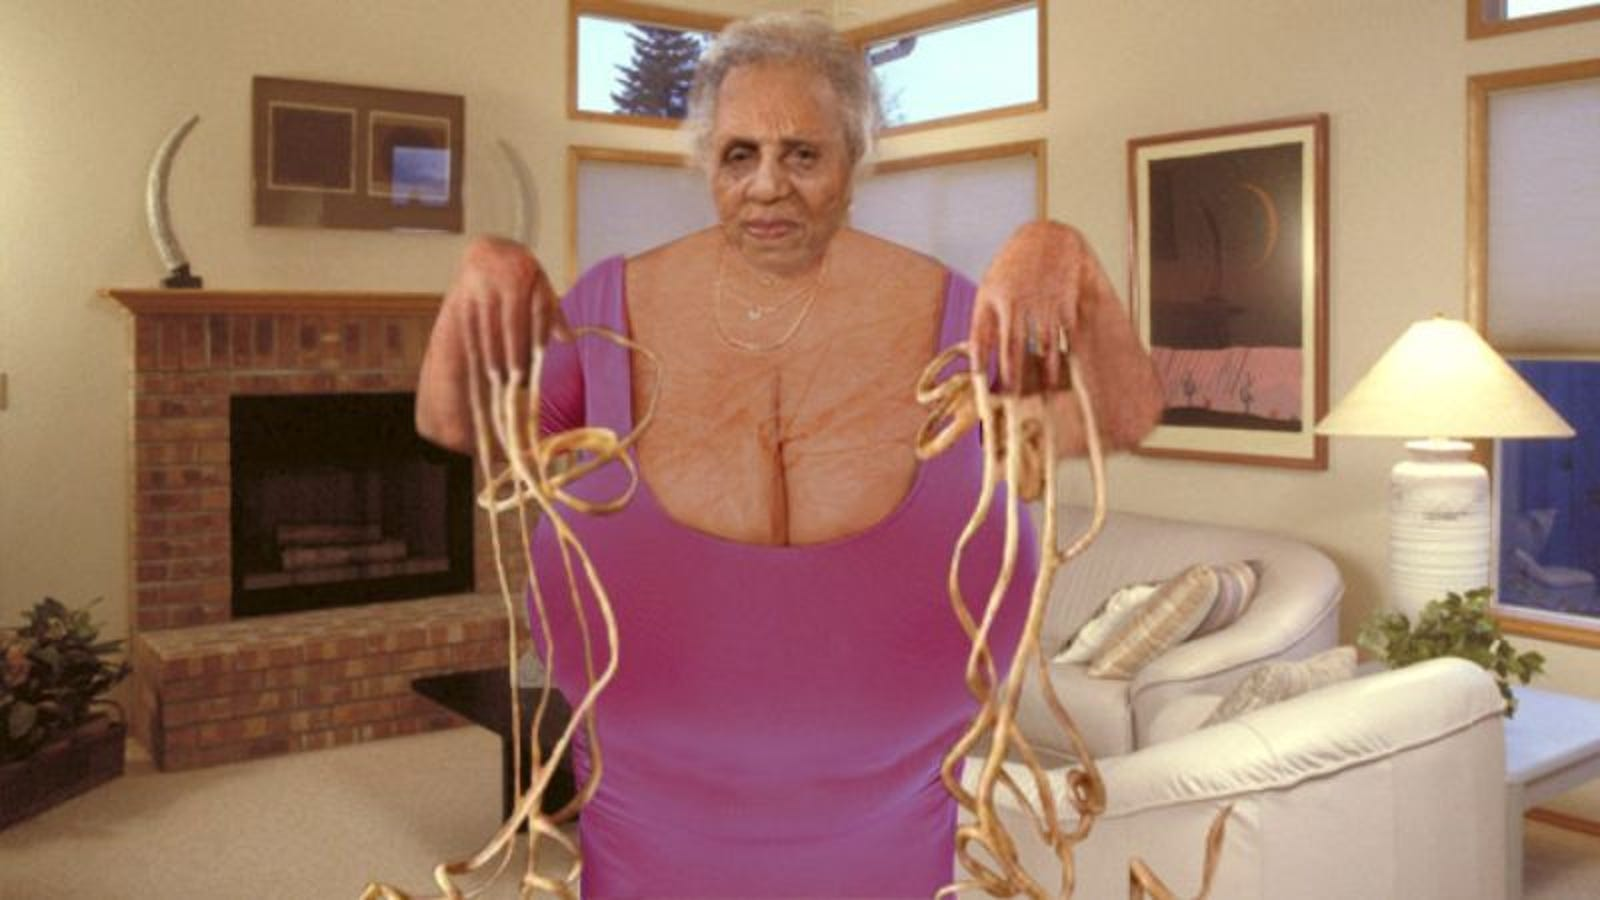 The Guinness World Record Holder For Largest Natural Breasts And Longest  Fingernails Has Also Just Become The World's Oldest Woman!